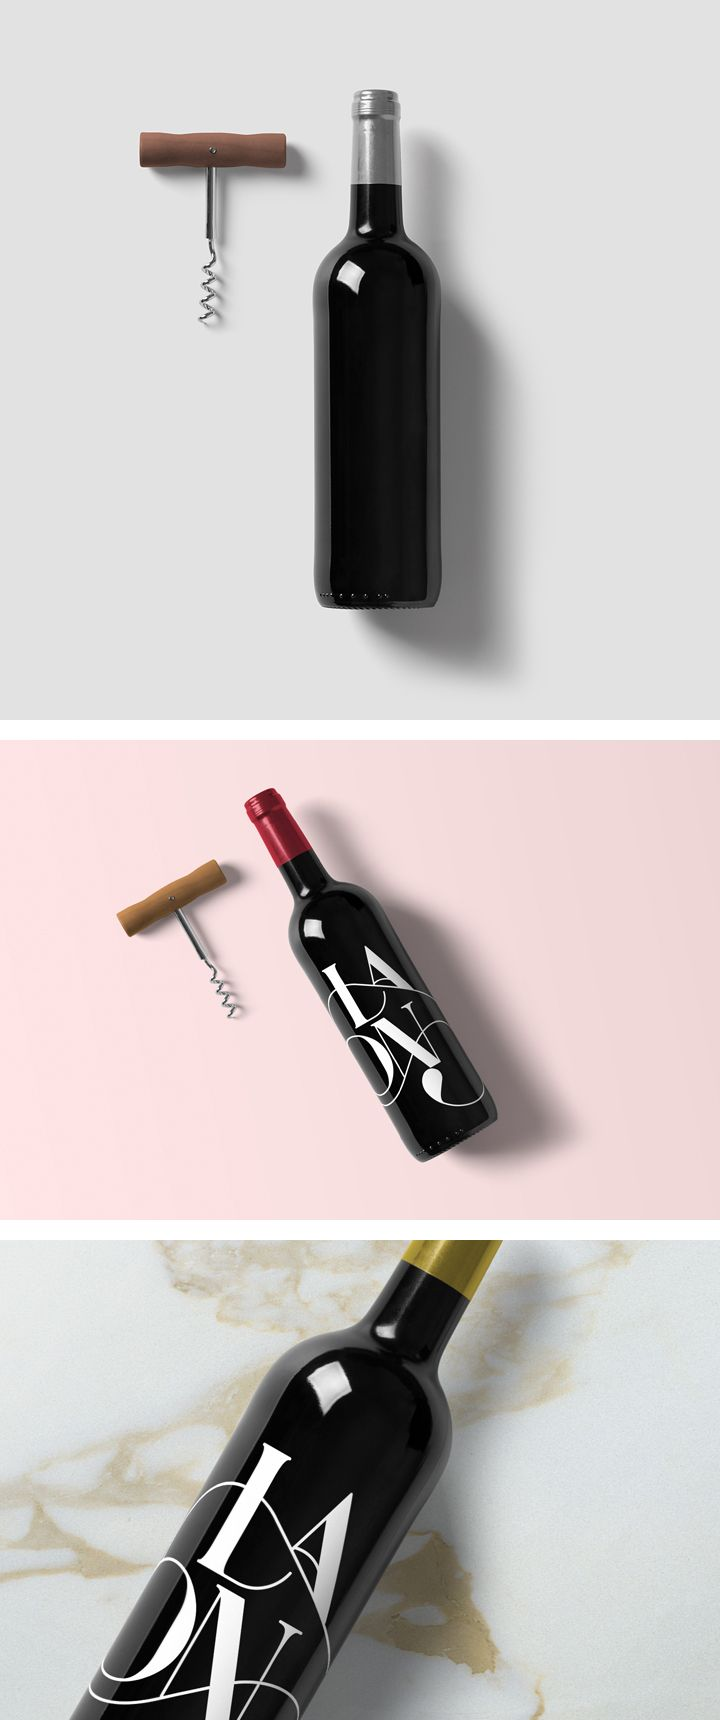 30+ Free Product Mockups of Apple Devices & Branding